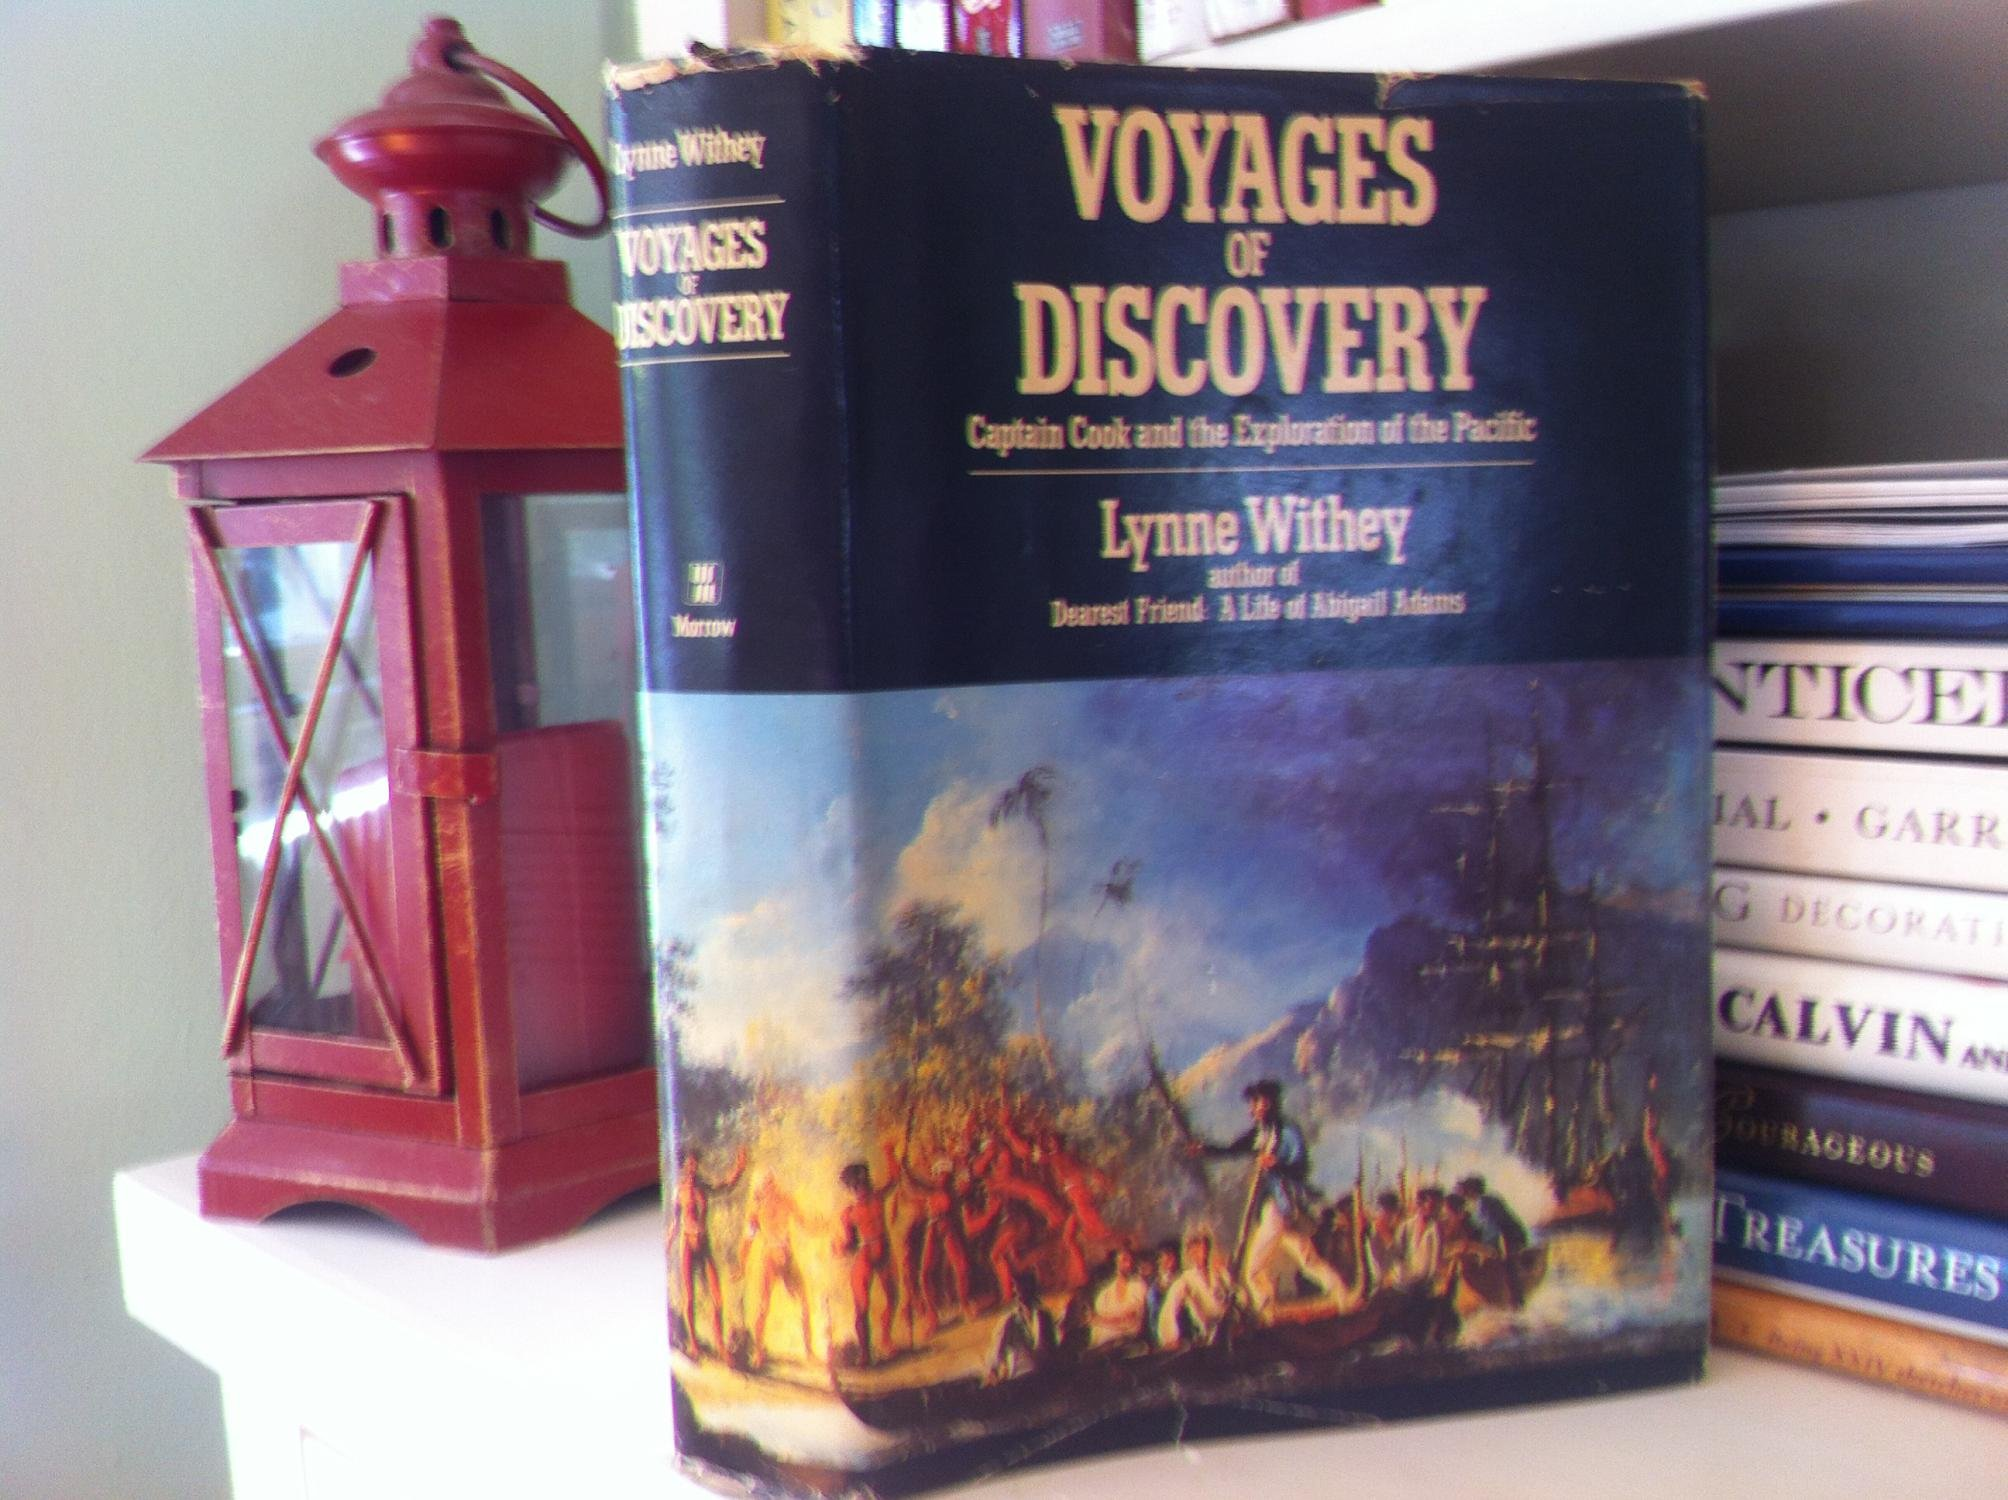 Voyages of Discovery: Captain Cook and the Exploration of the Pacific, Lynne Withey